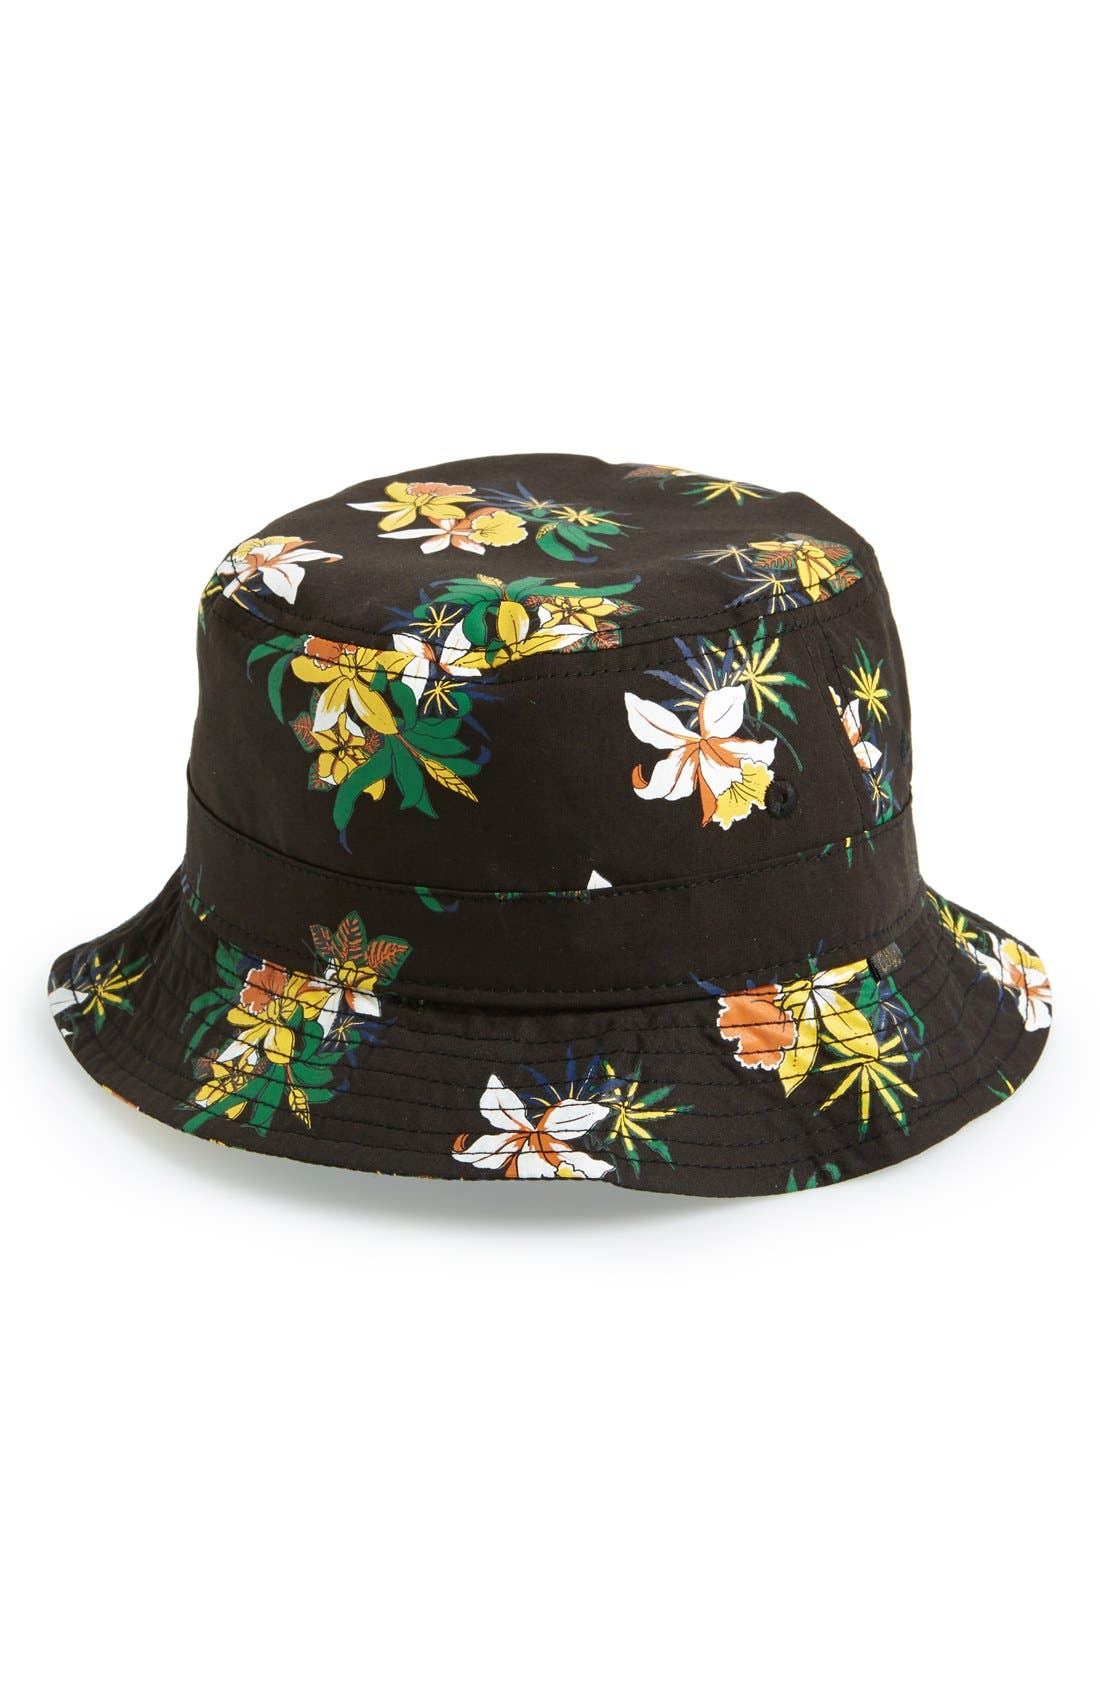 Main Image - Obey Floral Print Bucket Hat